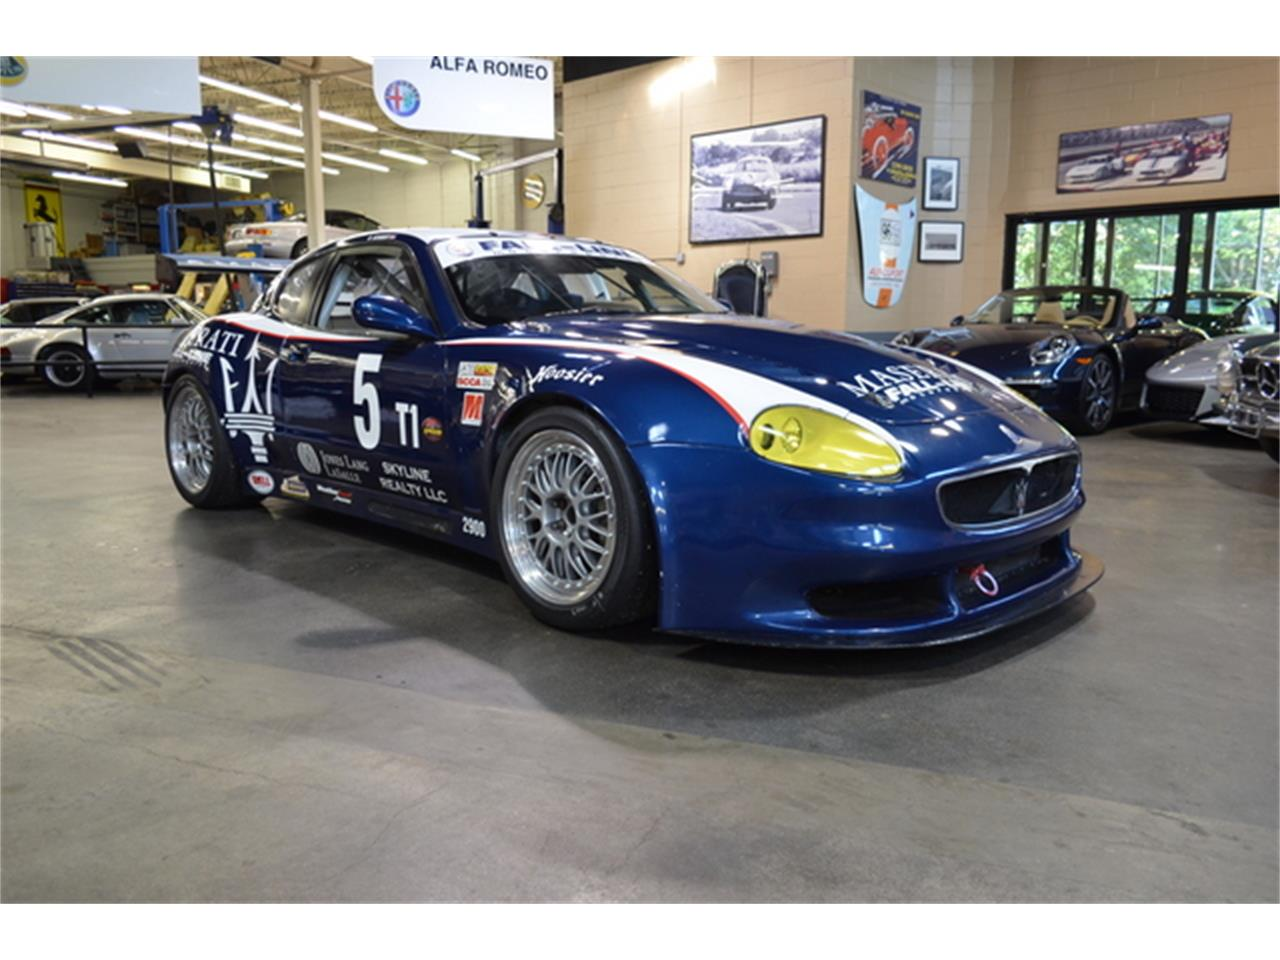 Maserati trofeo for sale